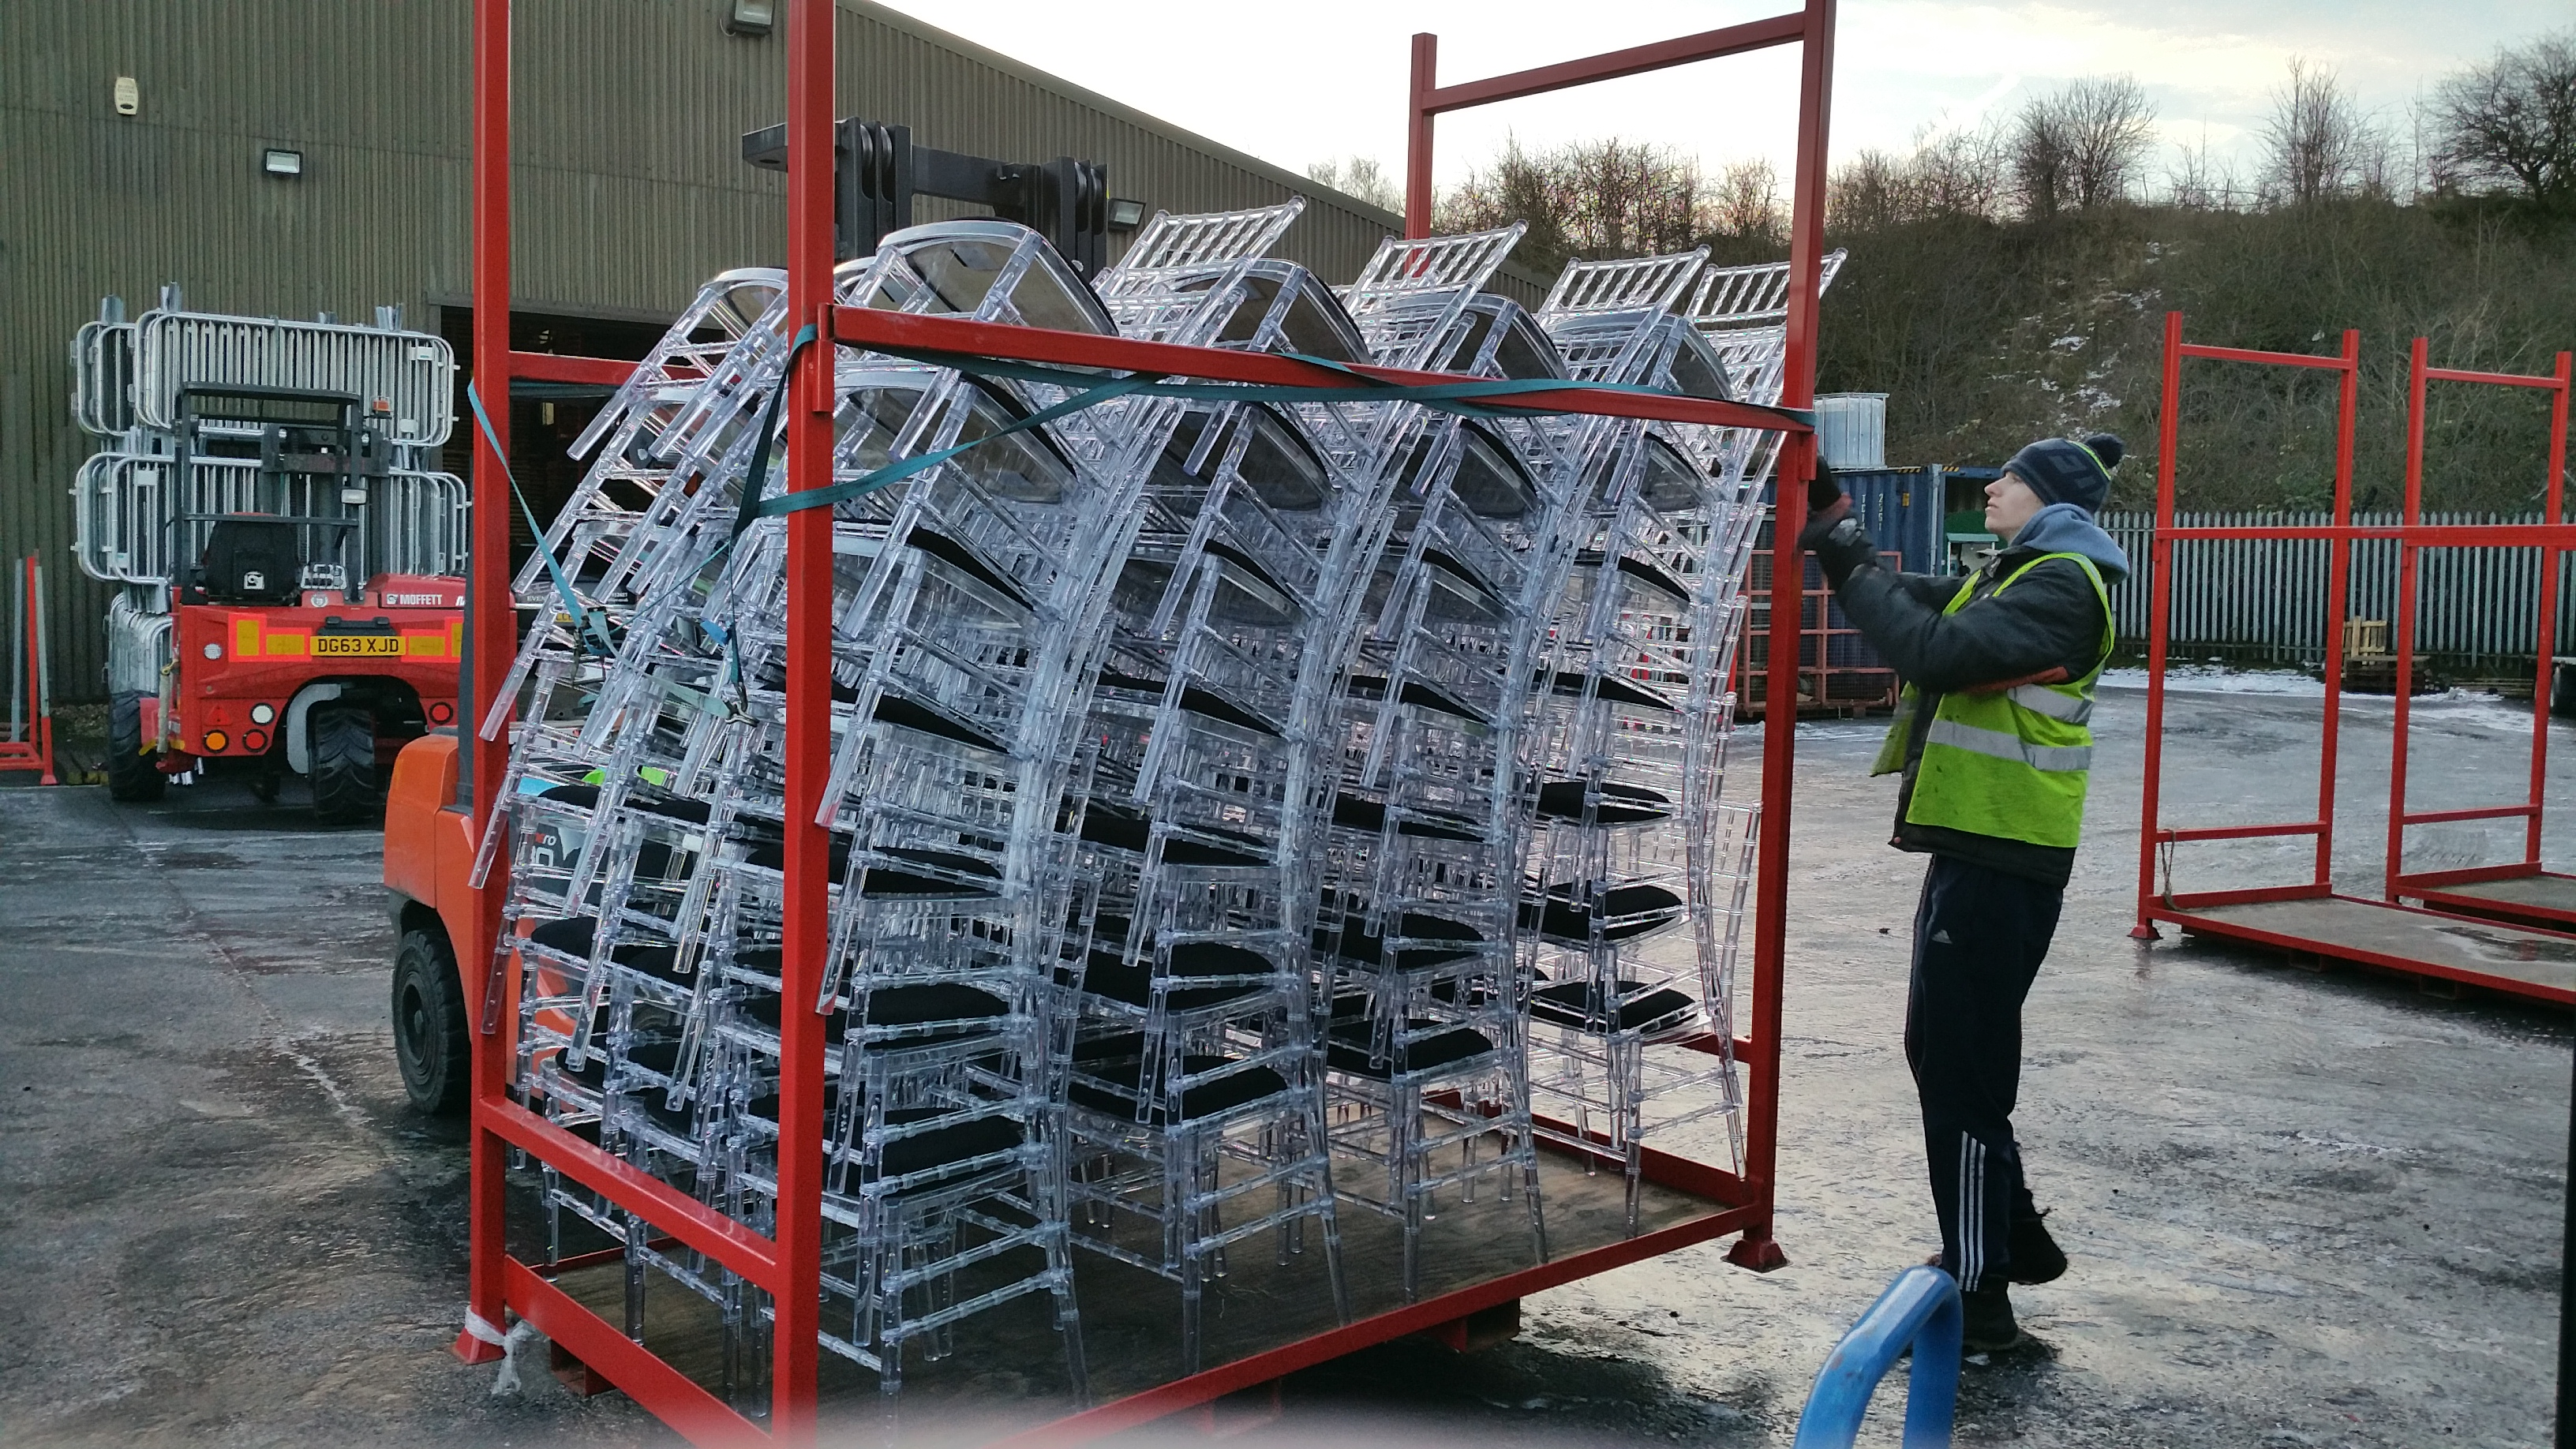 Ice Chiavari Chairs being loaded for transport to event - BE Event Hire